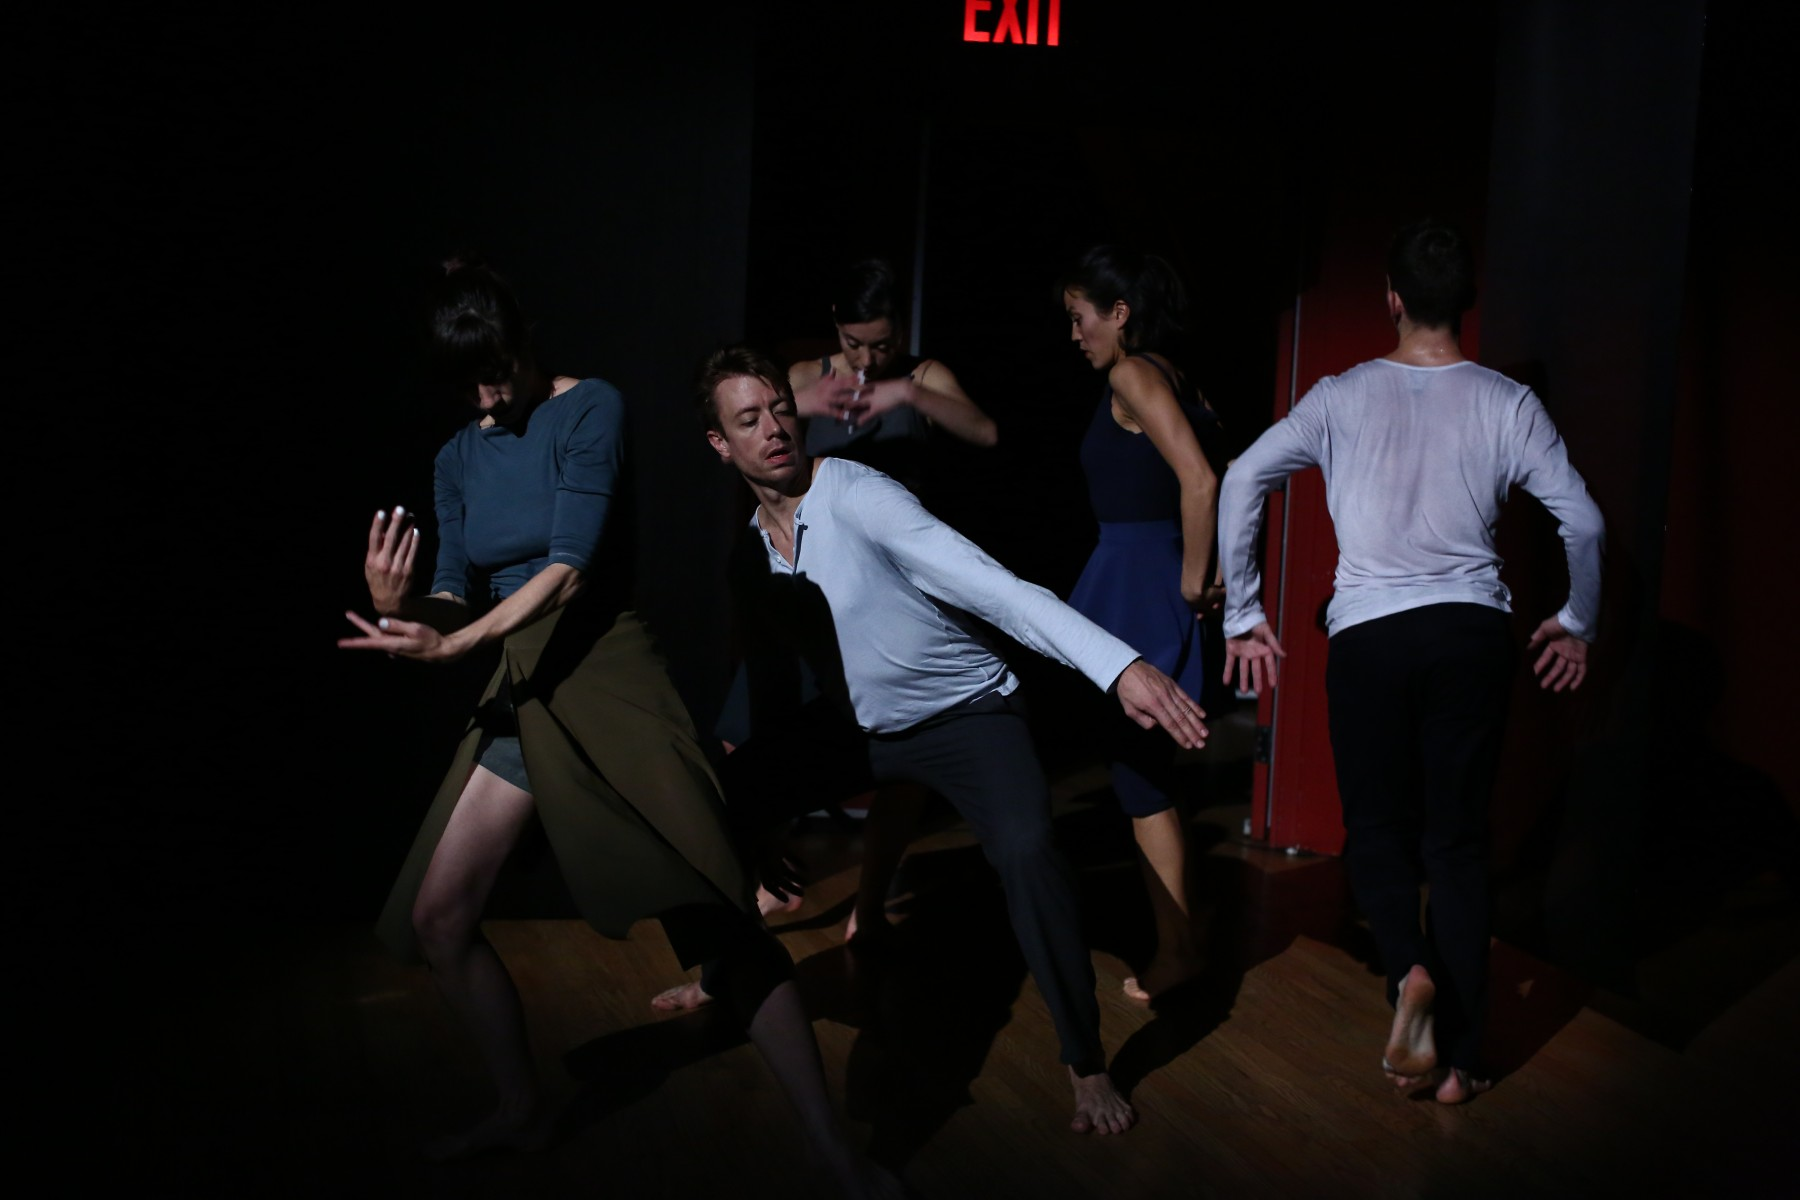 Sally Silver's cast dances in a tight clump in the shadows